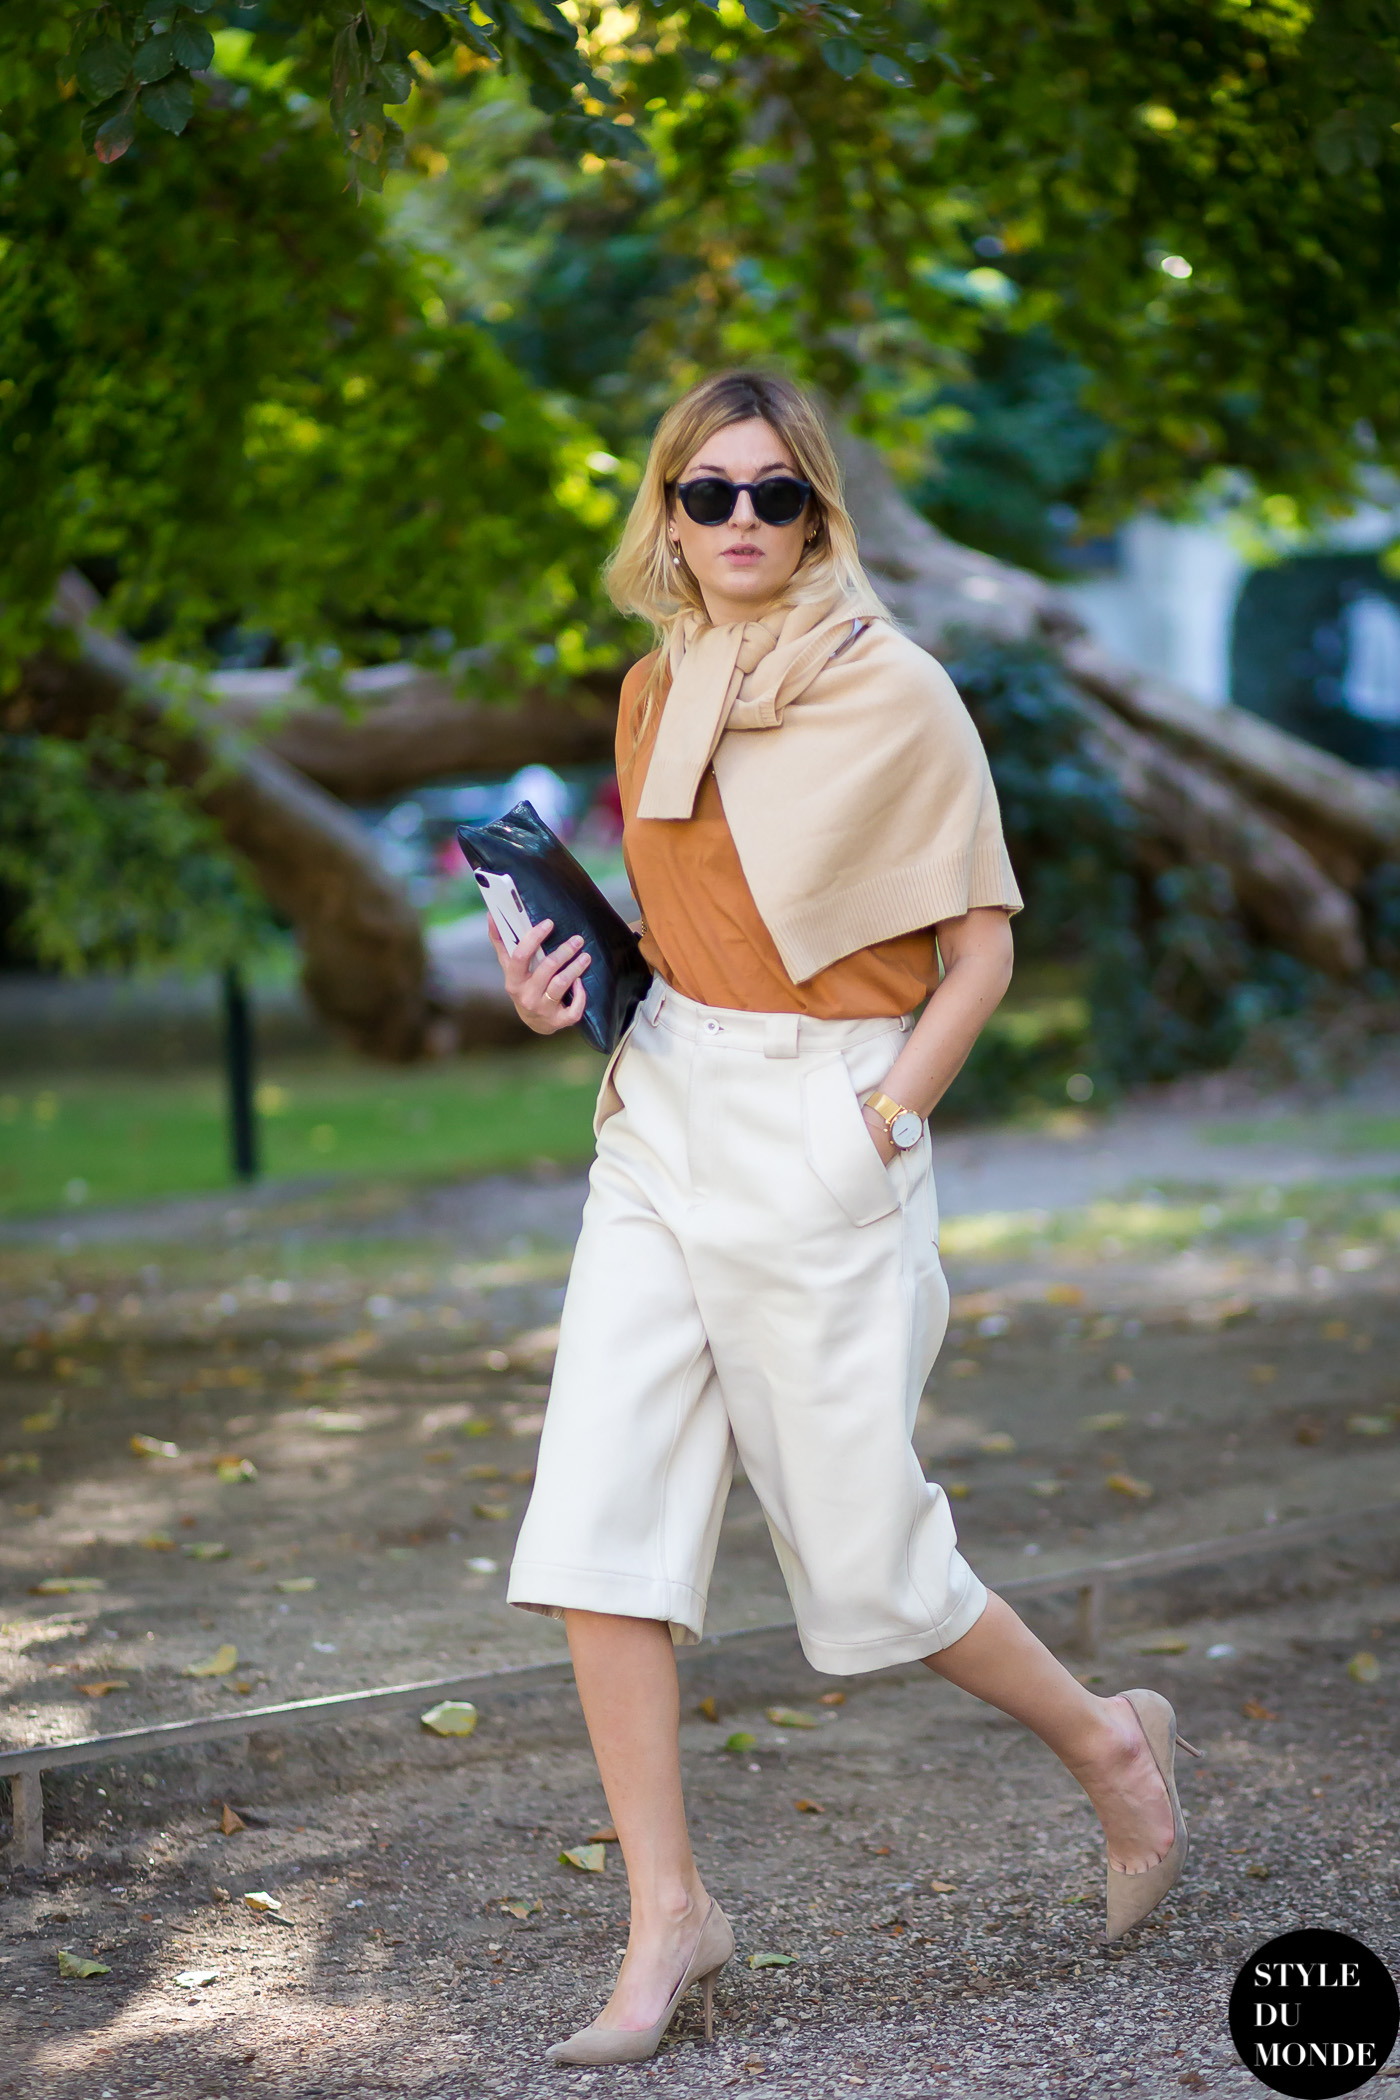 Camille Charrière Street Style Street Fashion Streetsnaps by STYLEDUMONDE Street Style Fashion Blog